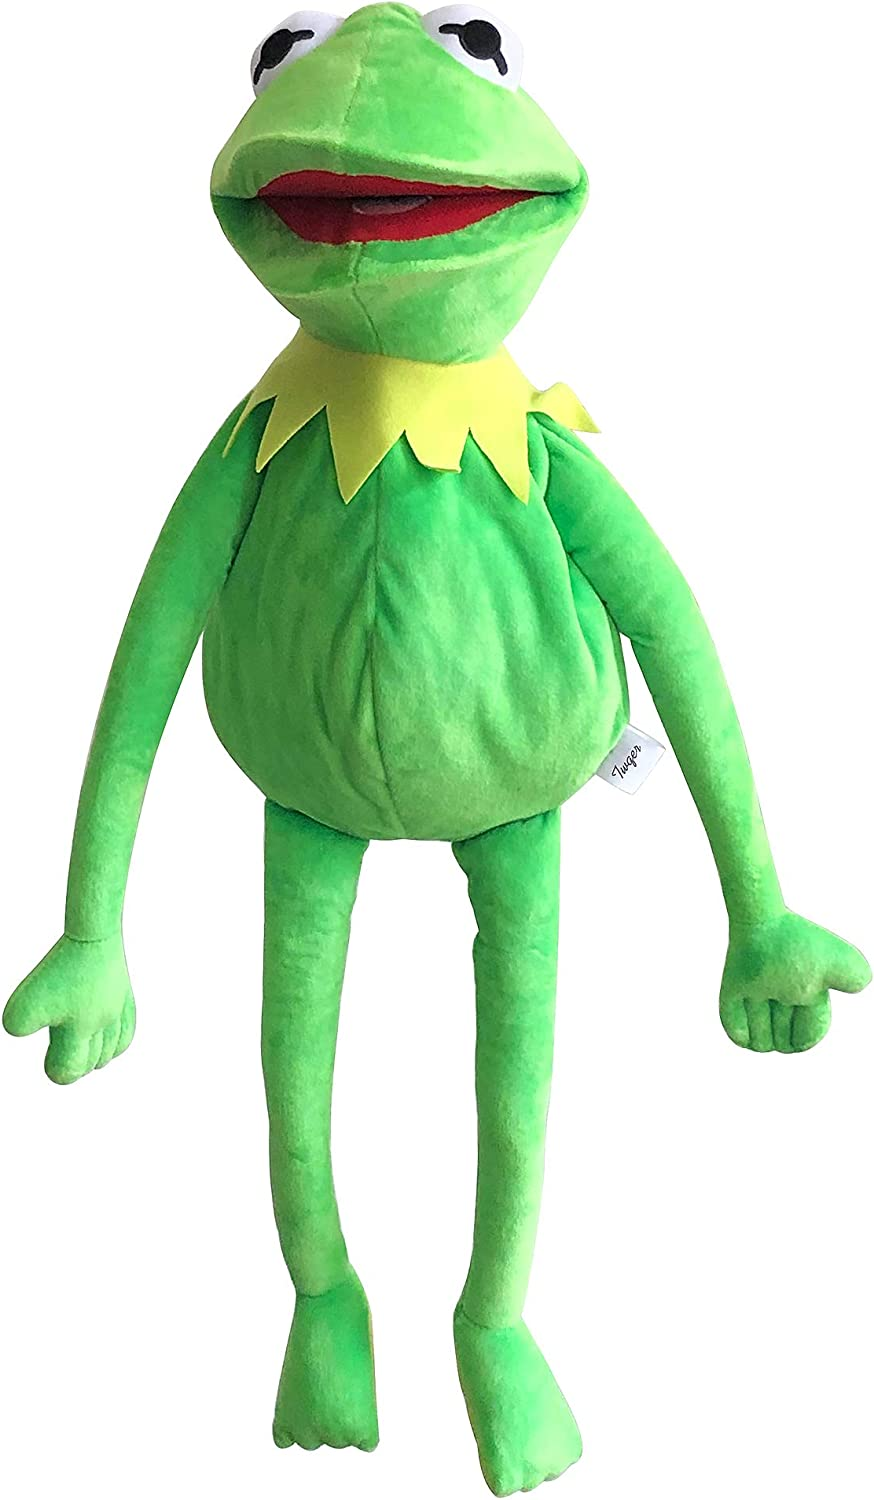 Kermit Frog Puppet, The Muppets Show, Soft Hand Frog Stuffed Plush Toy, Gift Ideas for Boys and Grils - 24 Inches